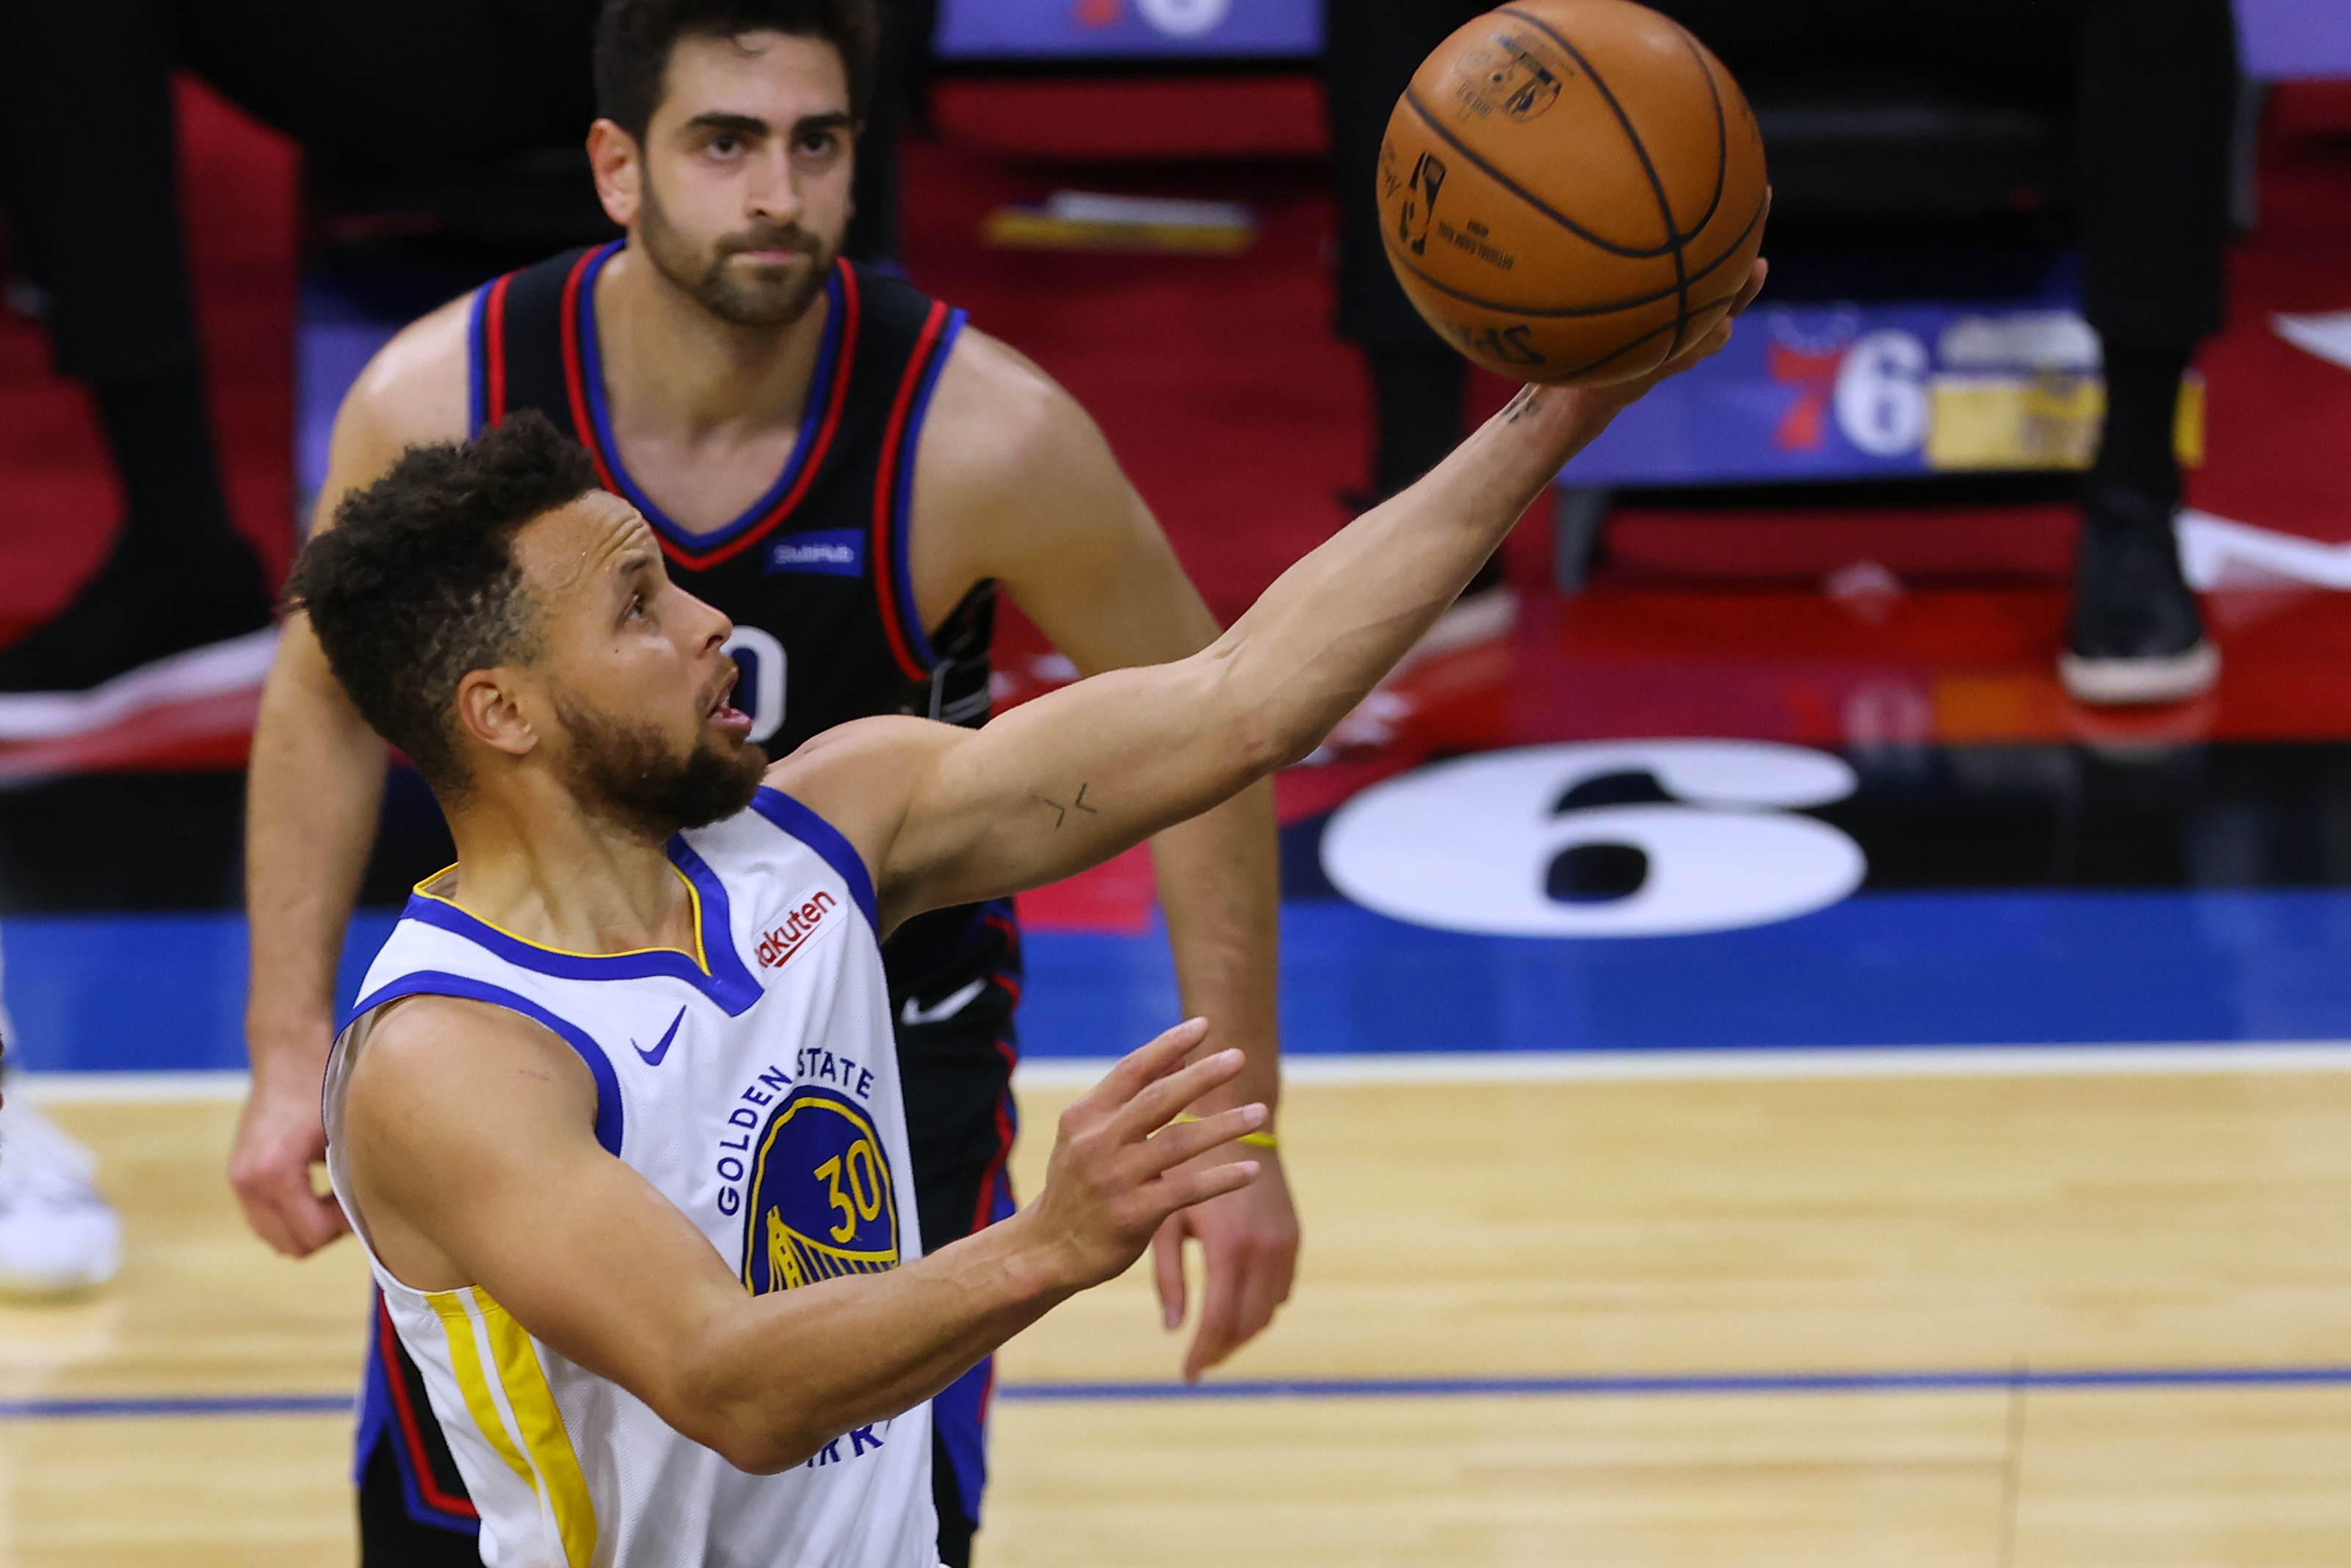 Stephen Curry of the Golden State Warriors in action against Furkan Korkmaz and Mike Scott of the Philadelphia 76ers during an NBA basketball game at Wells Fargo Center on April 19, 2021 in Philadelphia, Pennsylvania. The Warriors defeated the 76ers 107-96.